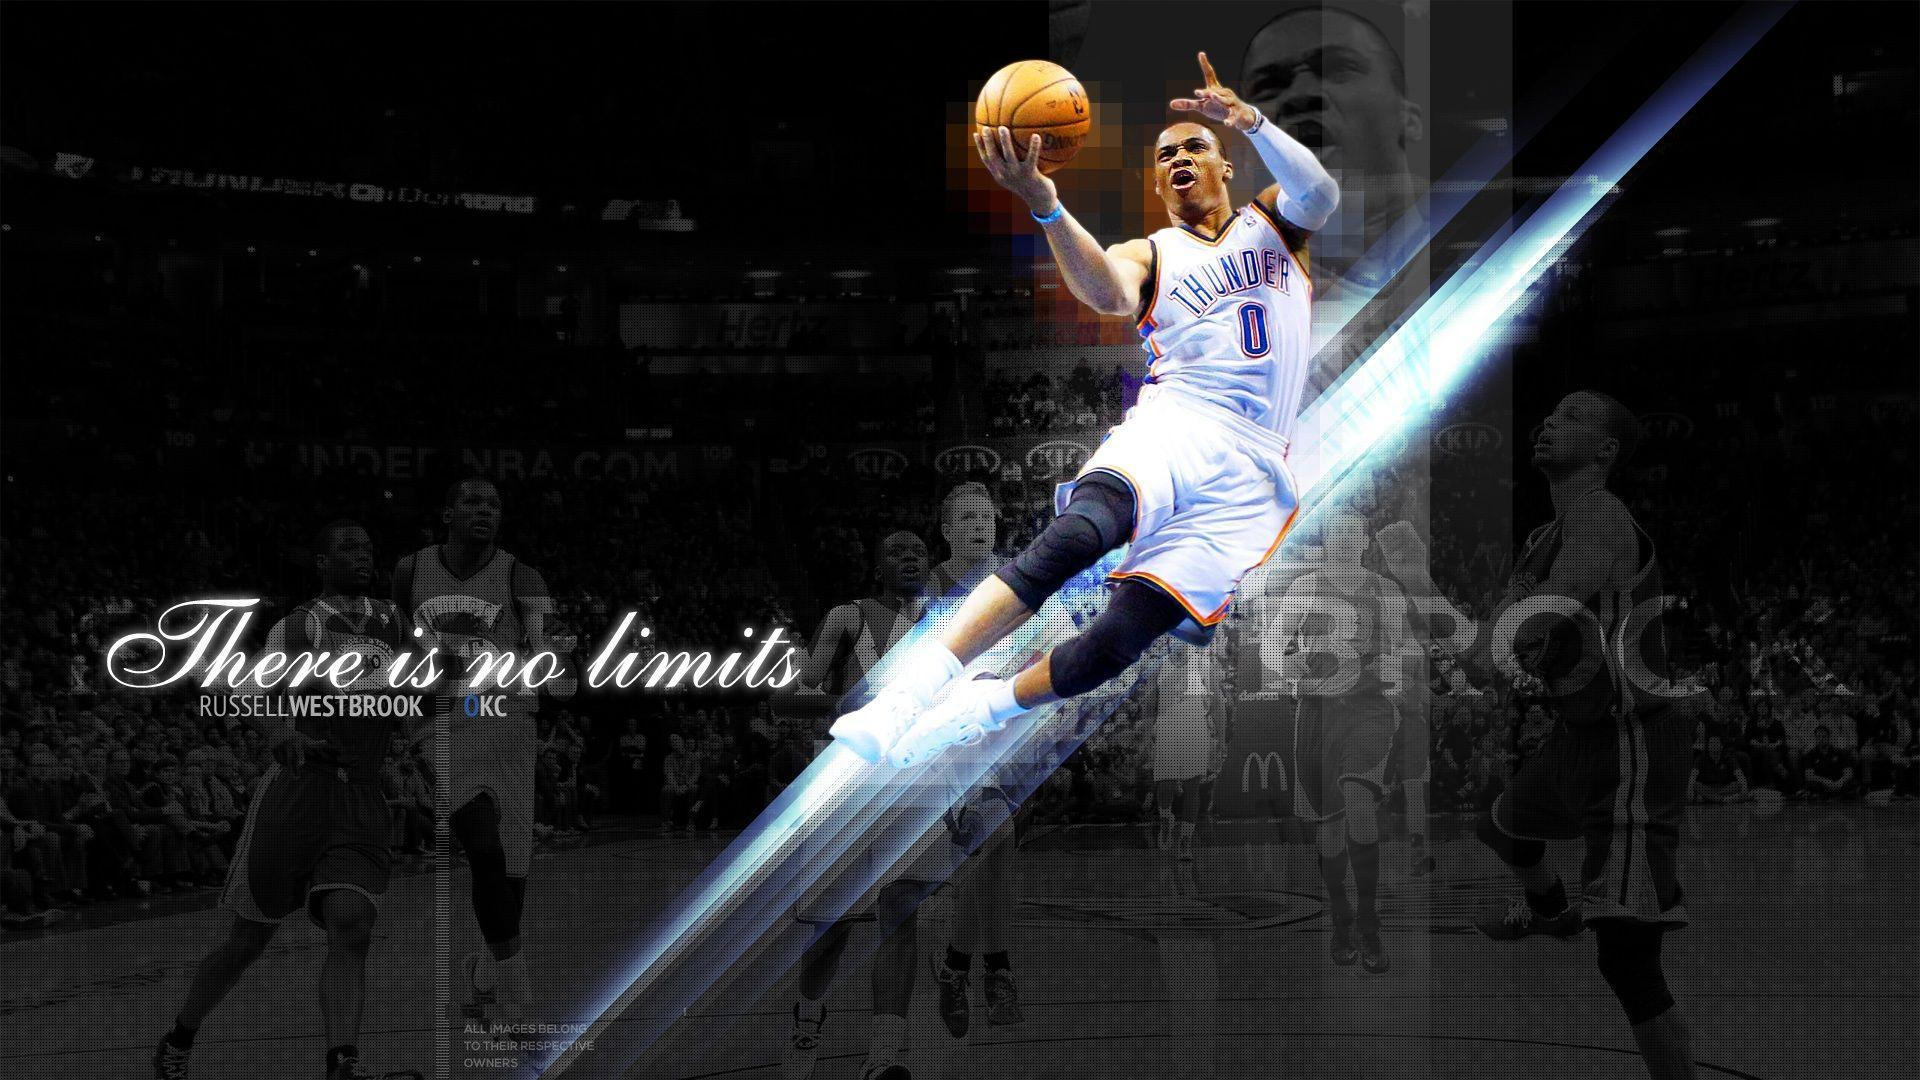 russell westbrook wallpapers wallpaper cave